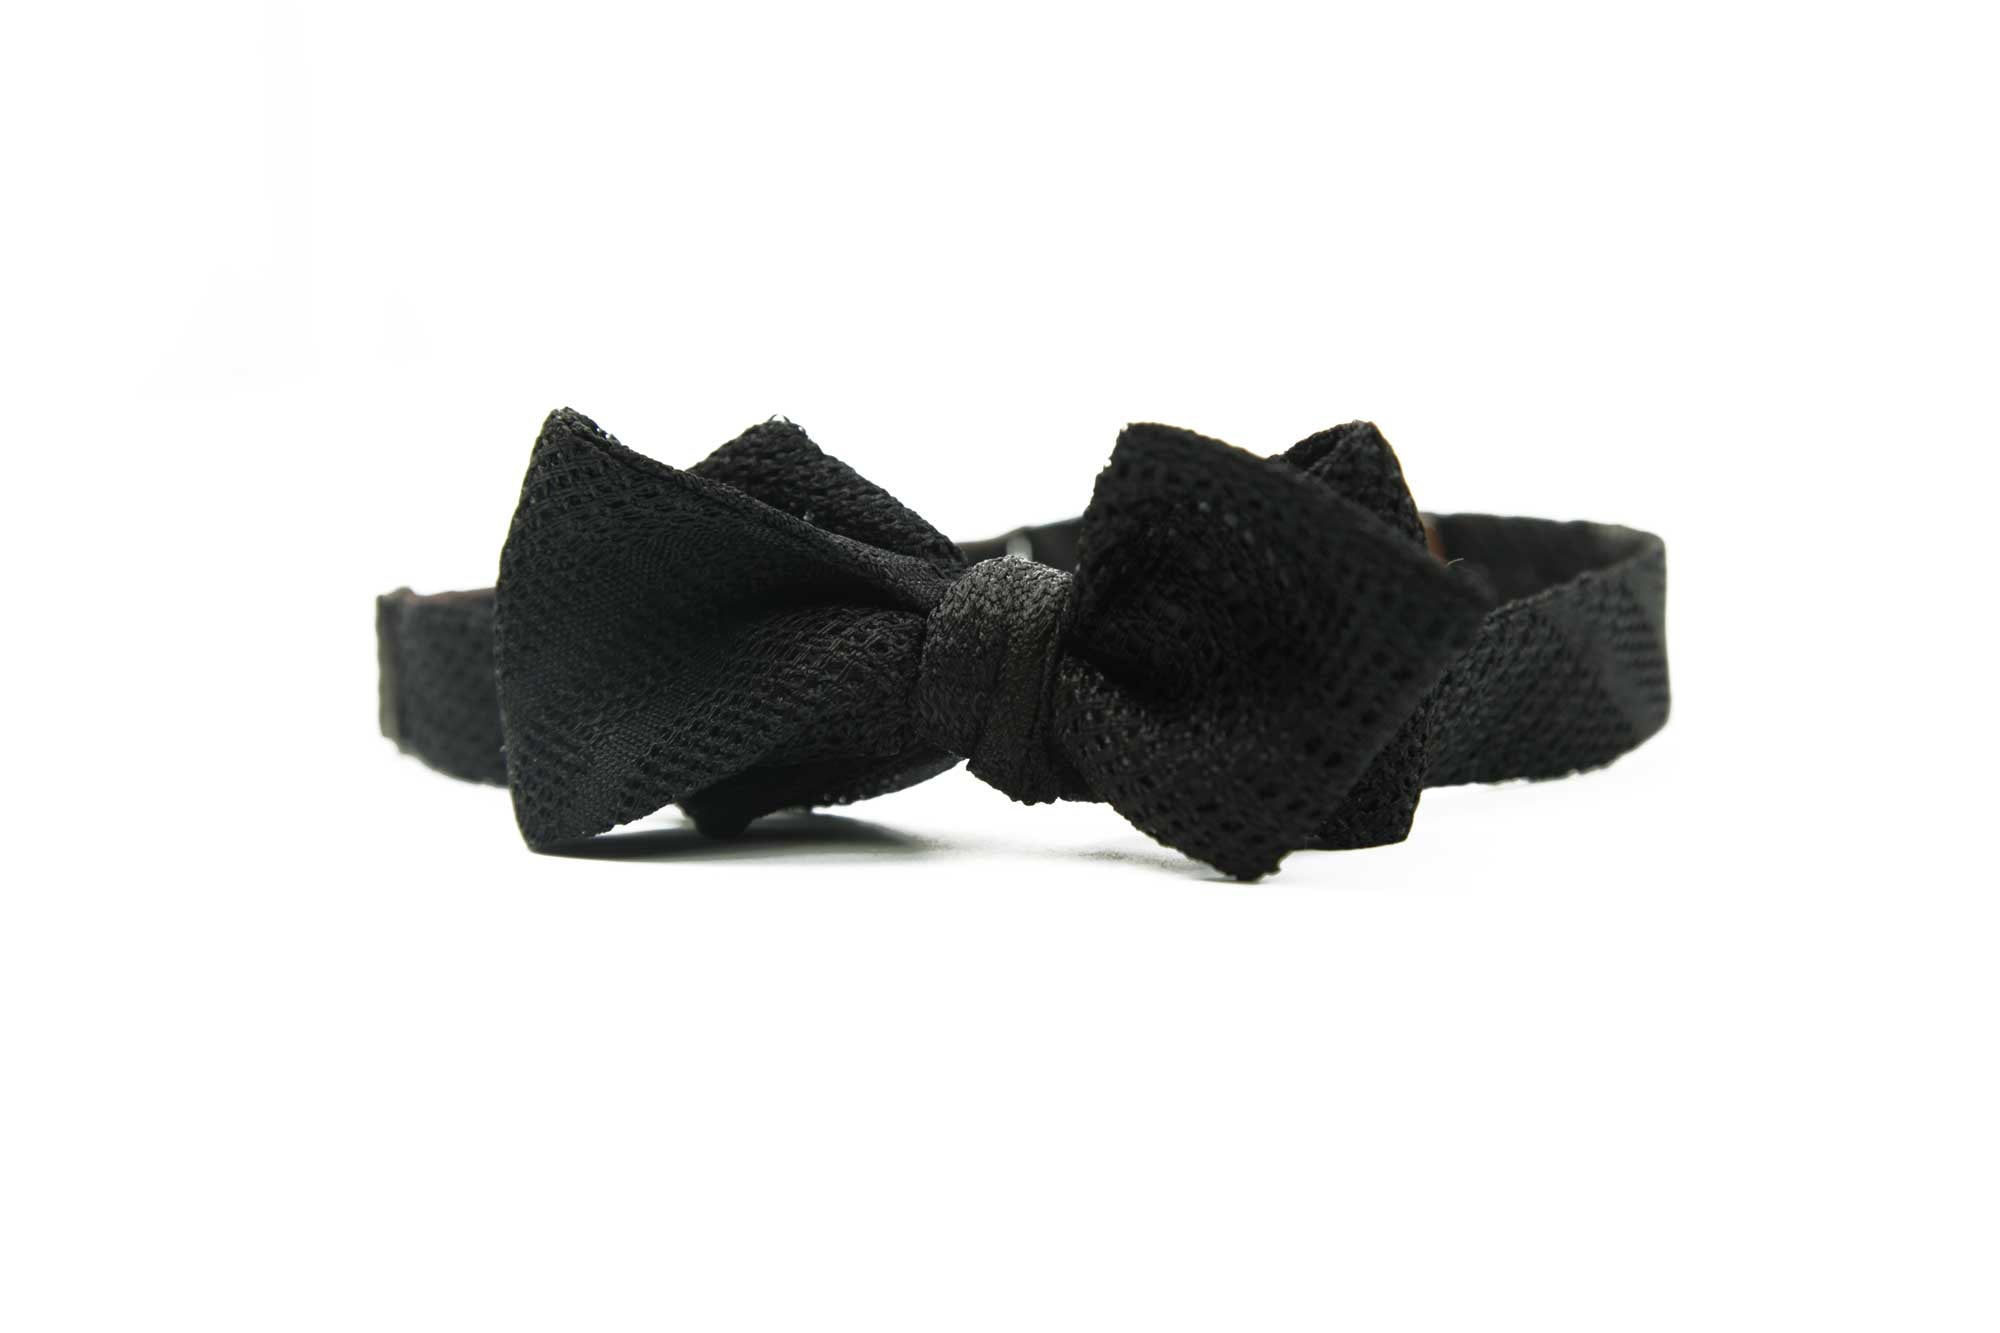 The Lace Oscar Bow Tie